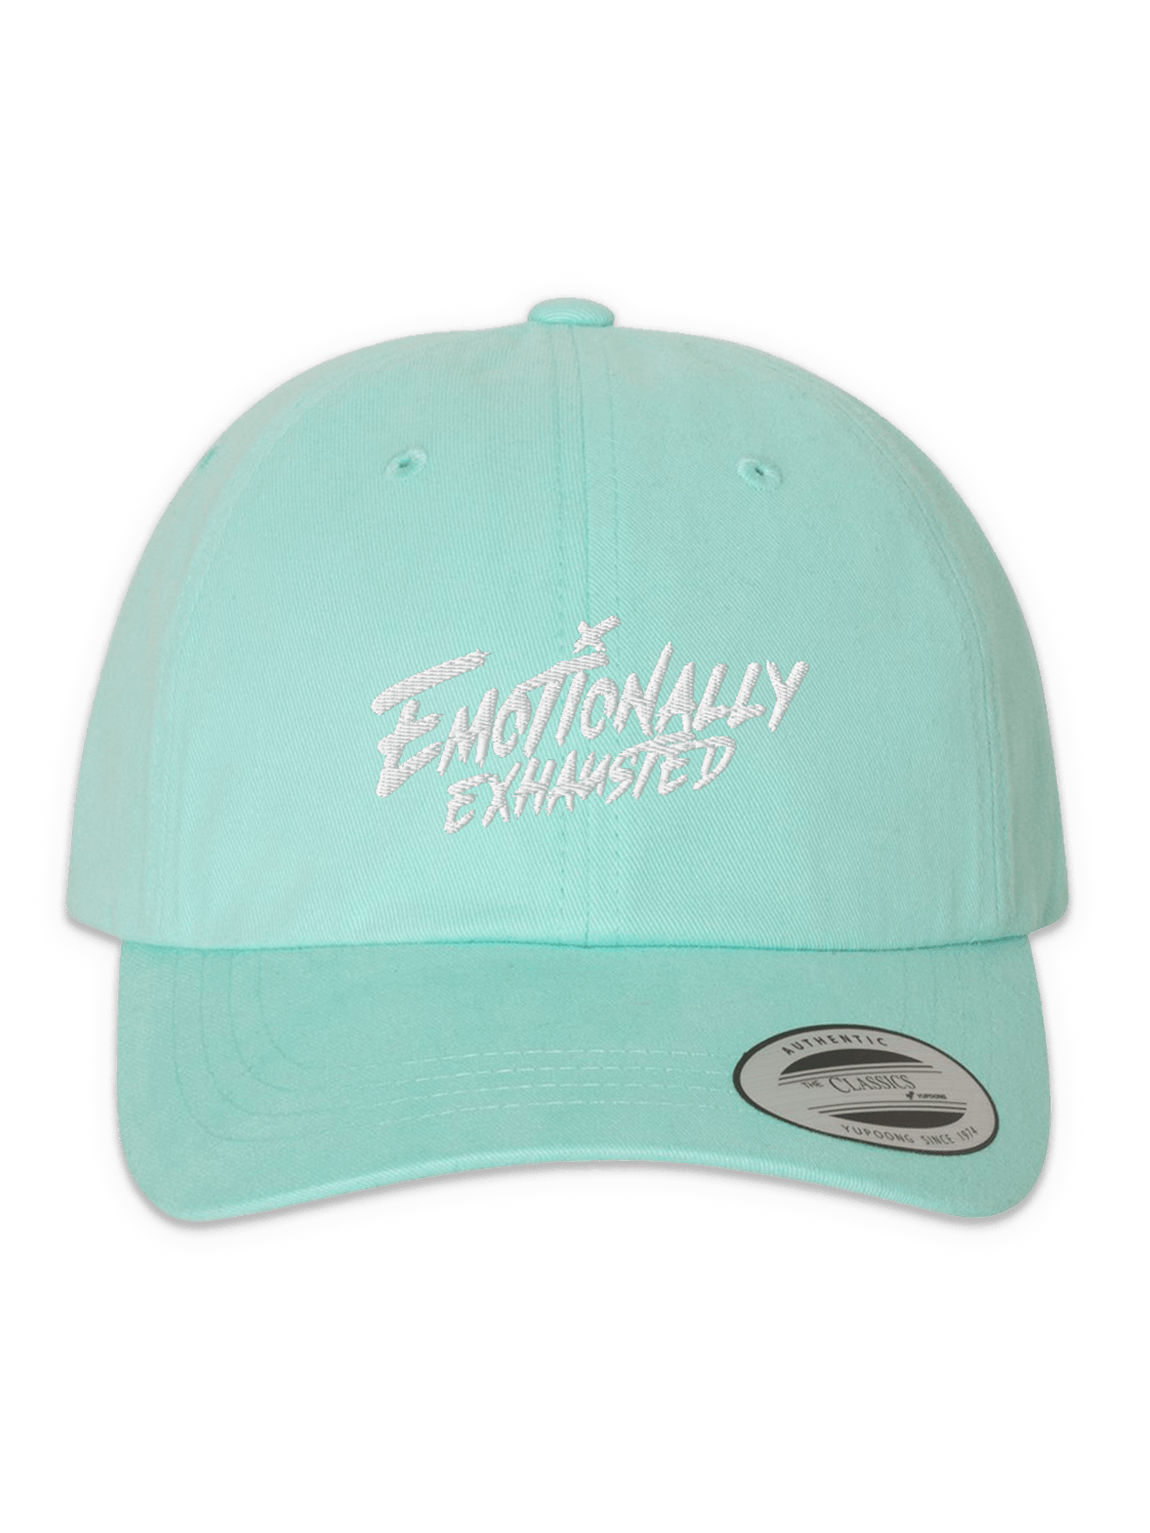 Emotionally Exhausted Mint Pastel Dad Hat product image (1)